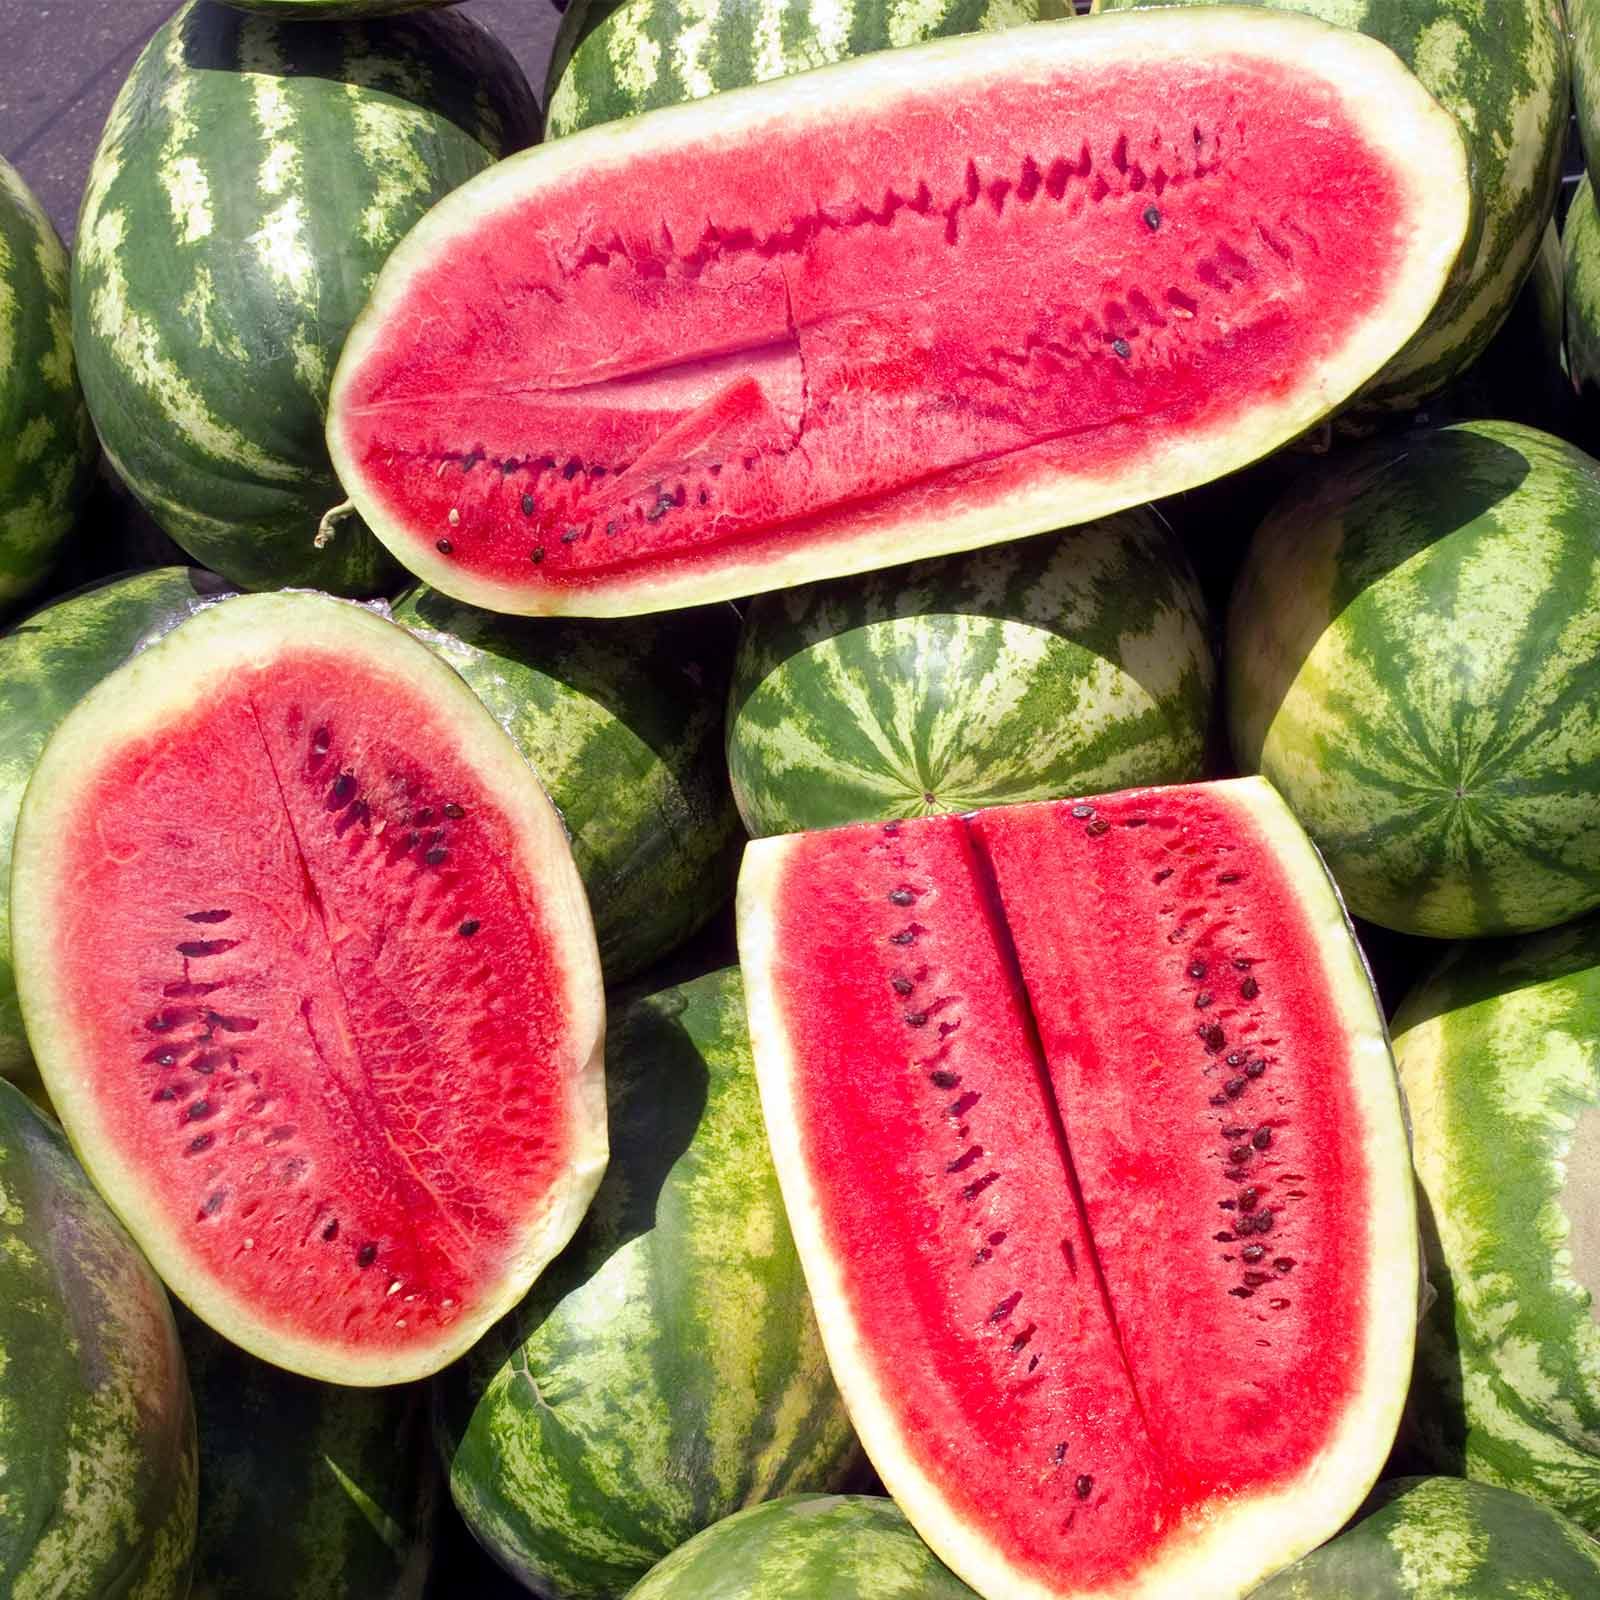 Watermelon Garden Seeds - Sugar Beauty Hybrid - 100 Seeds - Non-GMO, Vegetable Gardening Fruit Melon Seeds